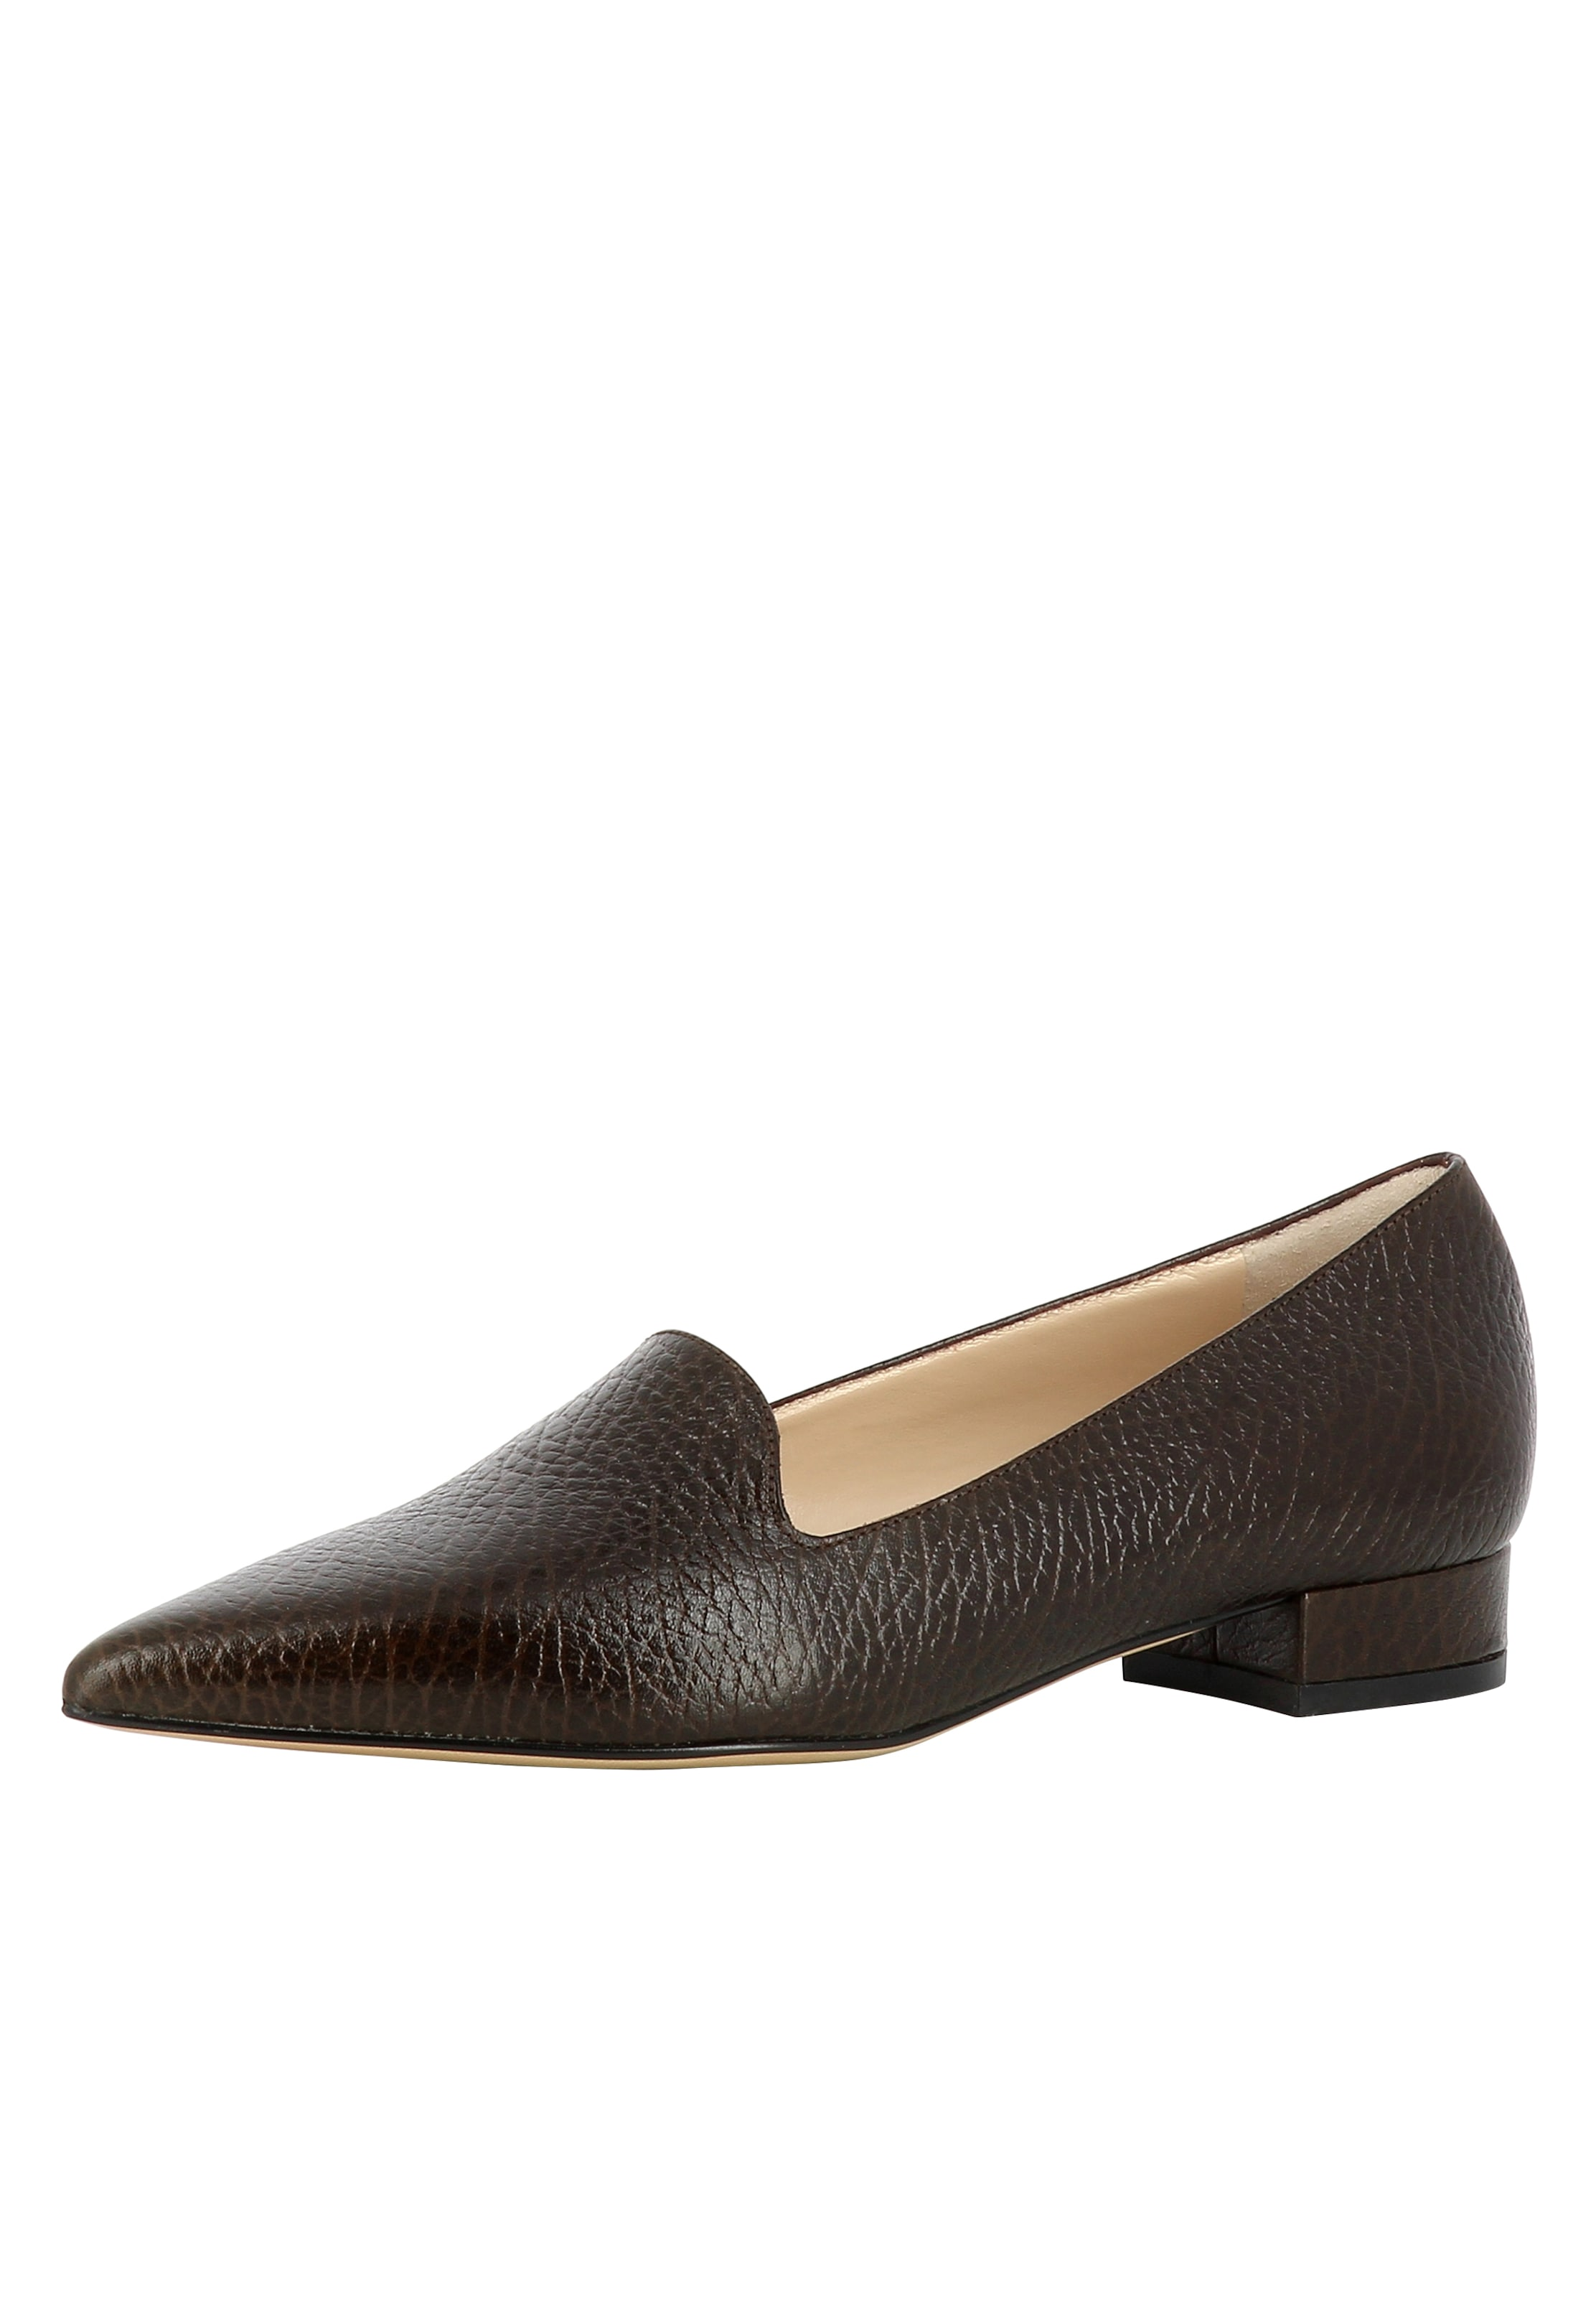 In Damen Slipper Franca Evita Braun WEH29DI